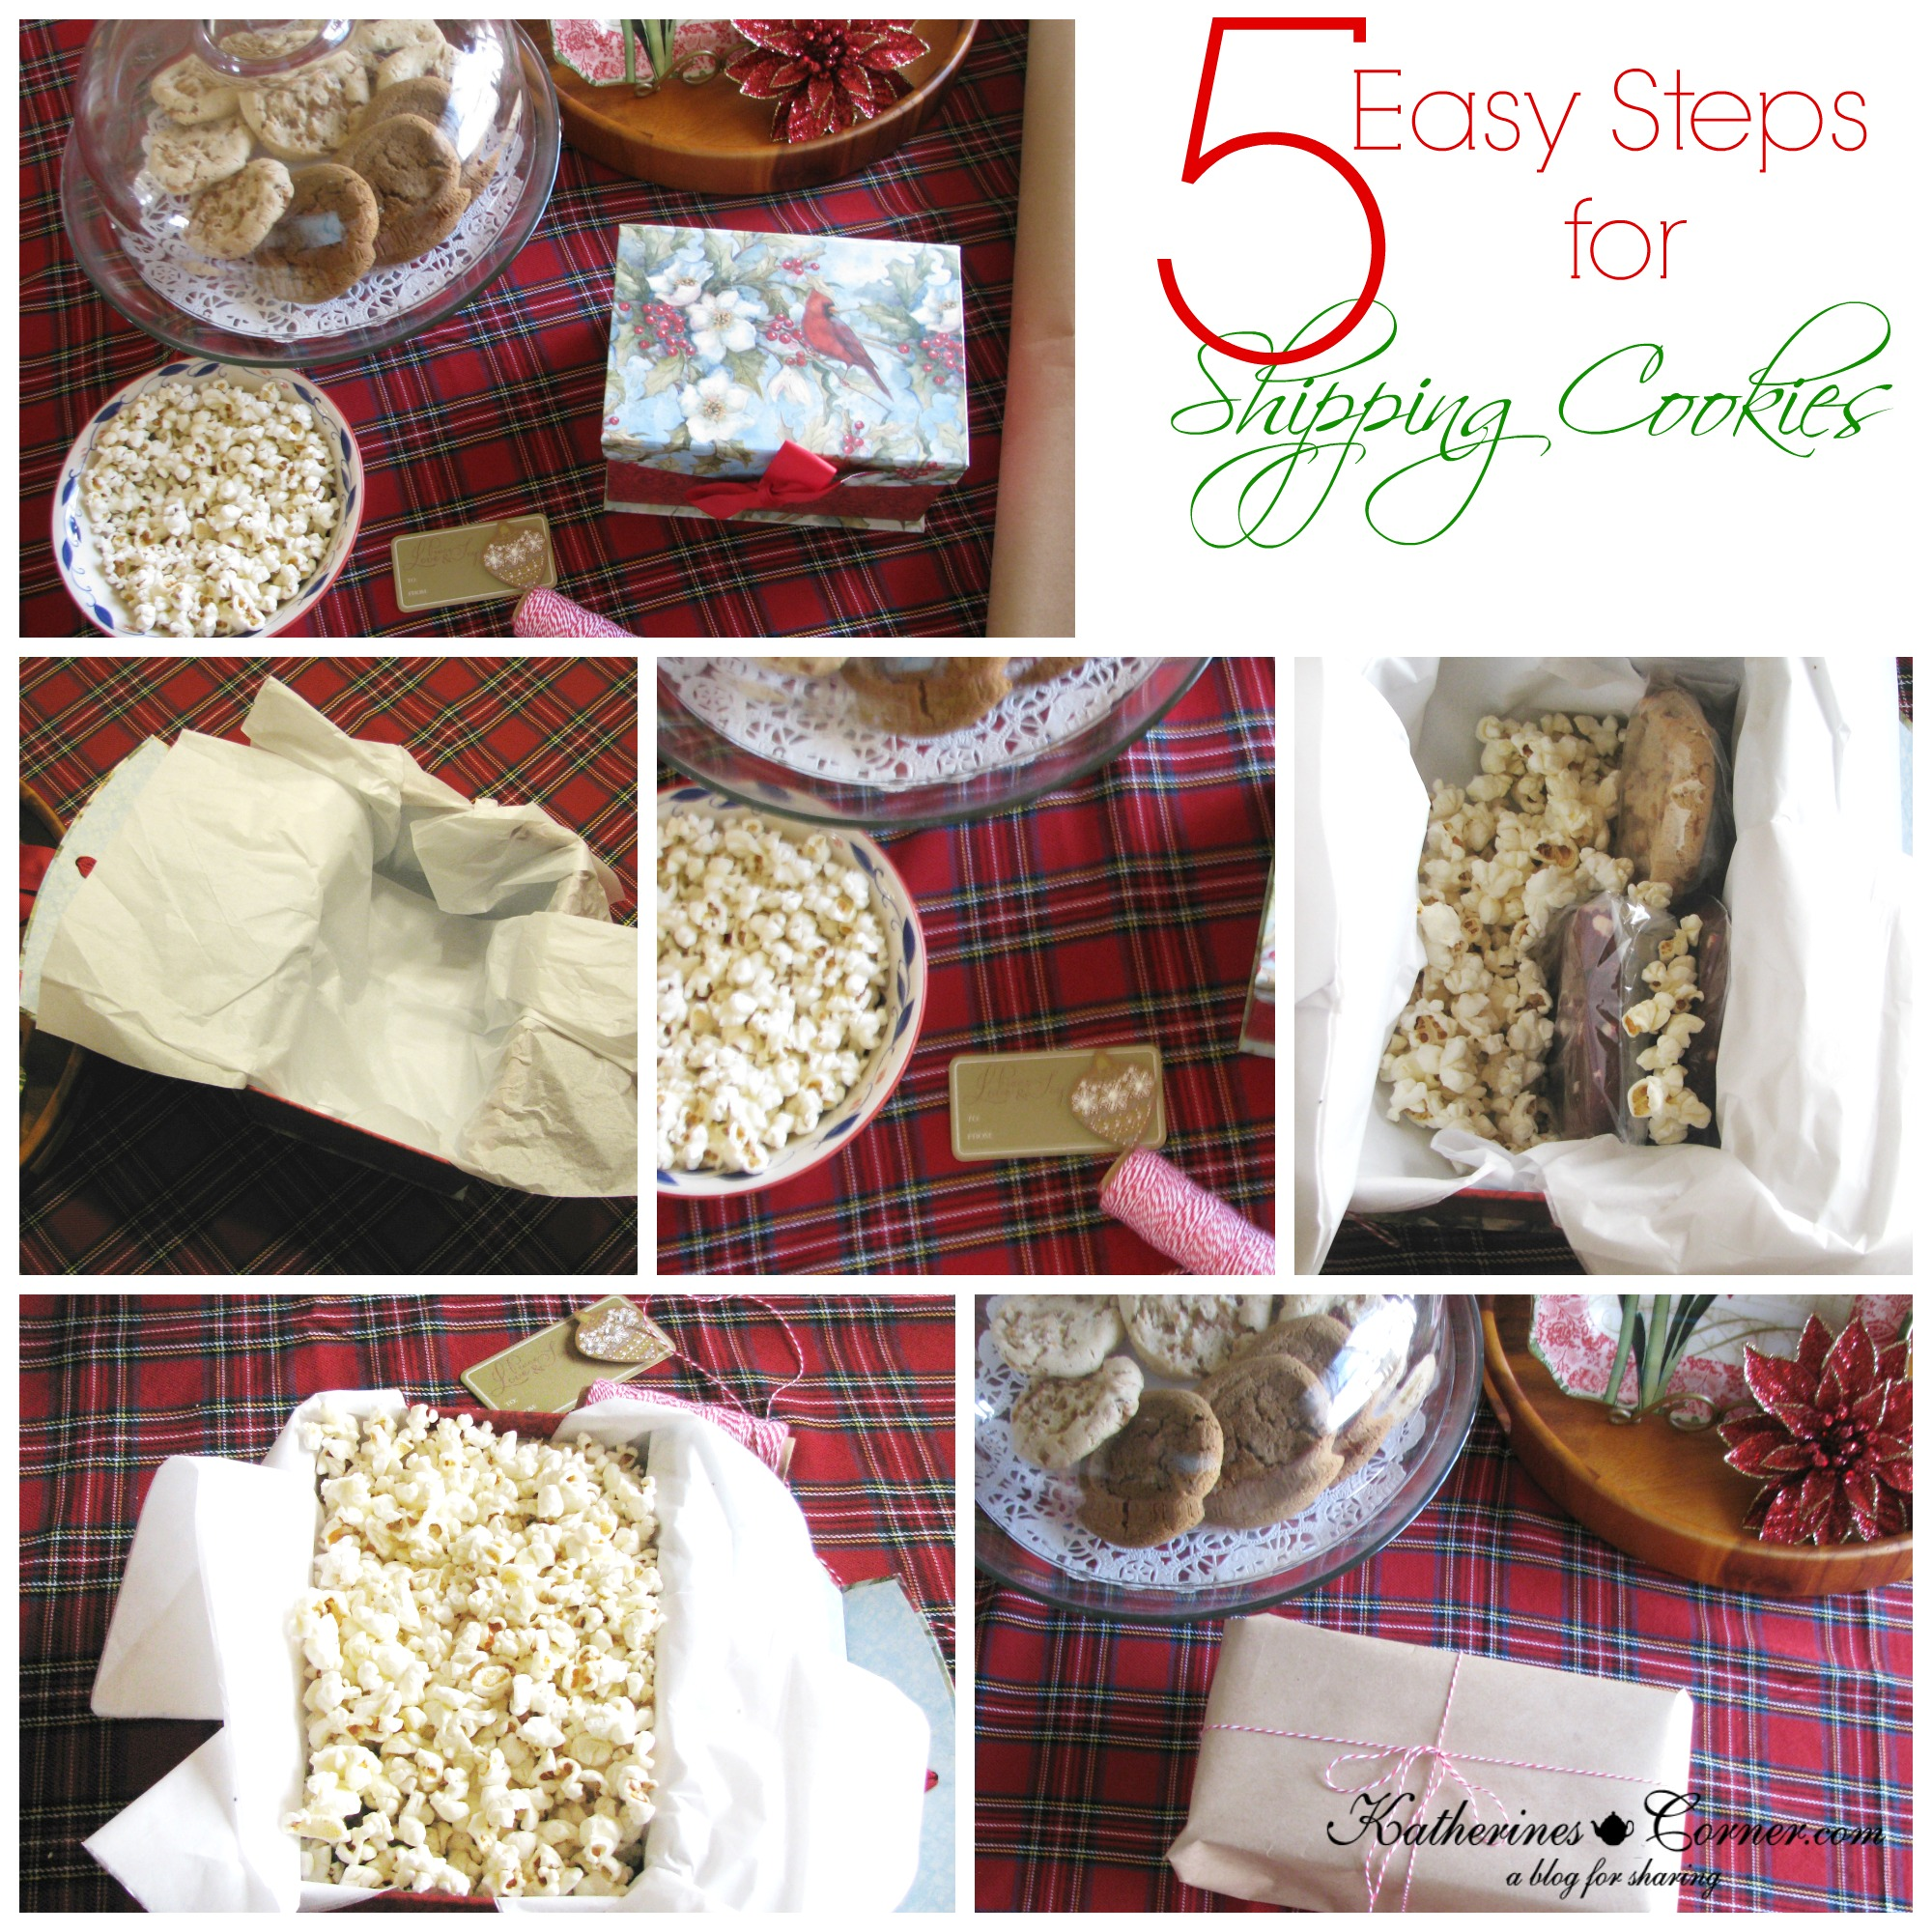 5 Easy Steps for Shipping Cookies